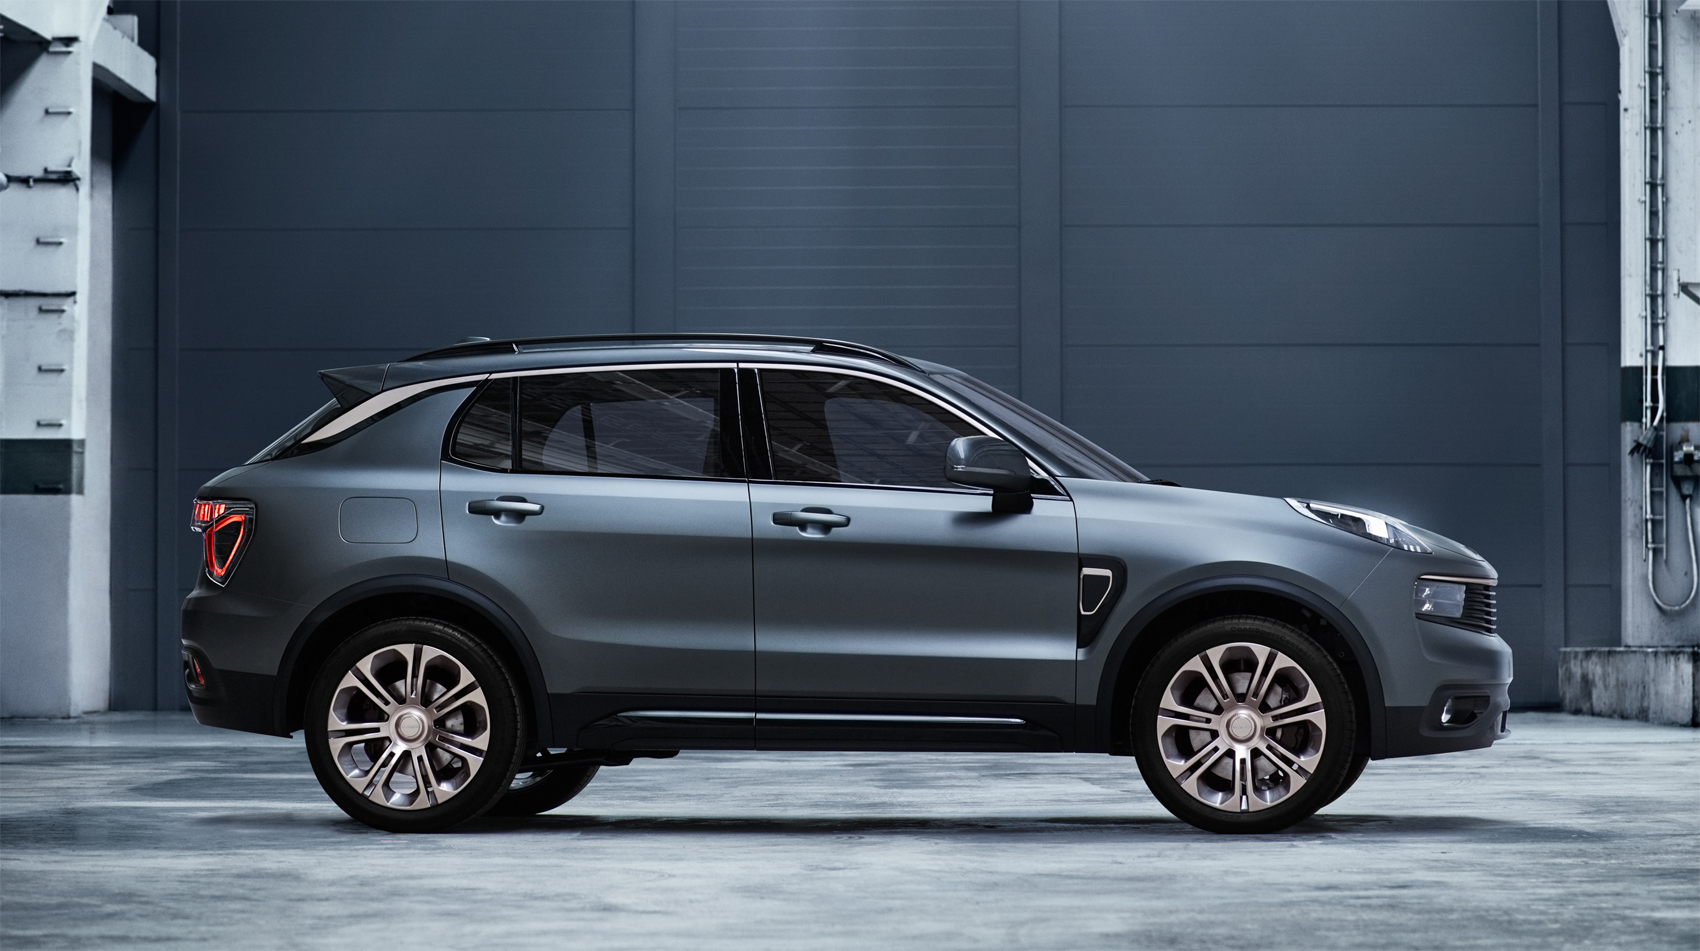 LYNK & CO, The Innovative Swedish Car Brand Looking To Change An Industry 8